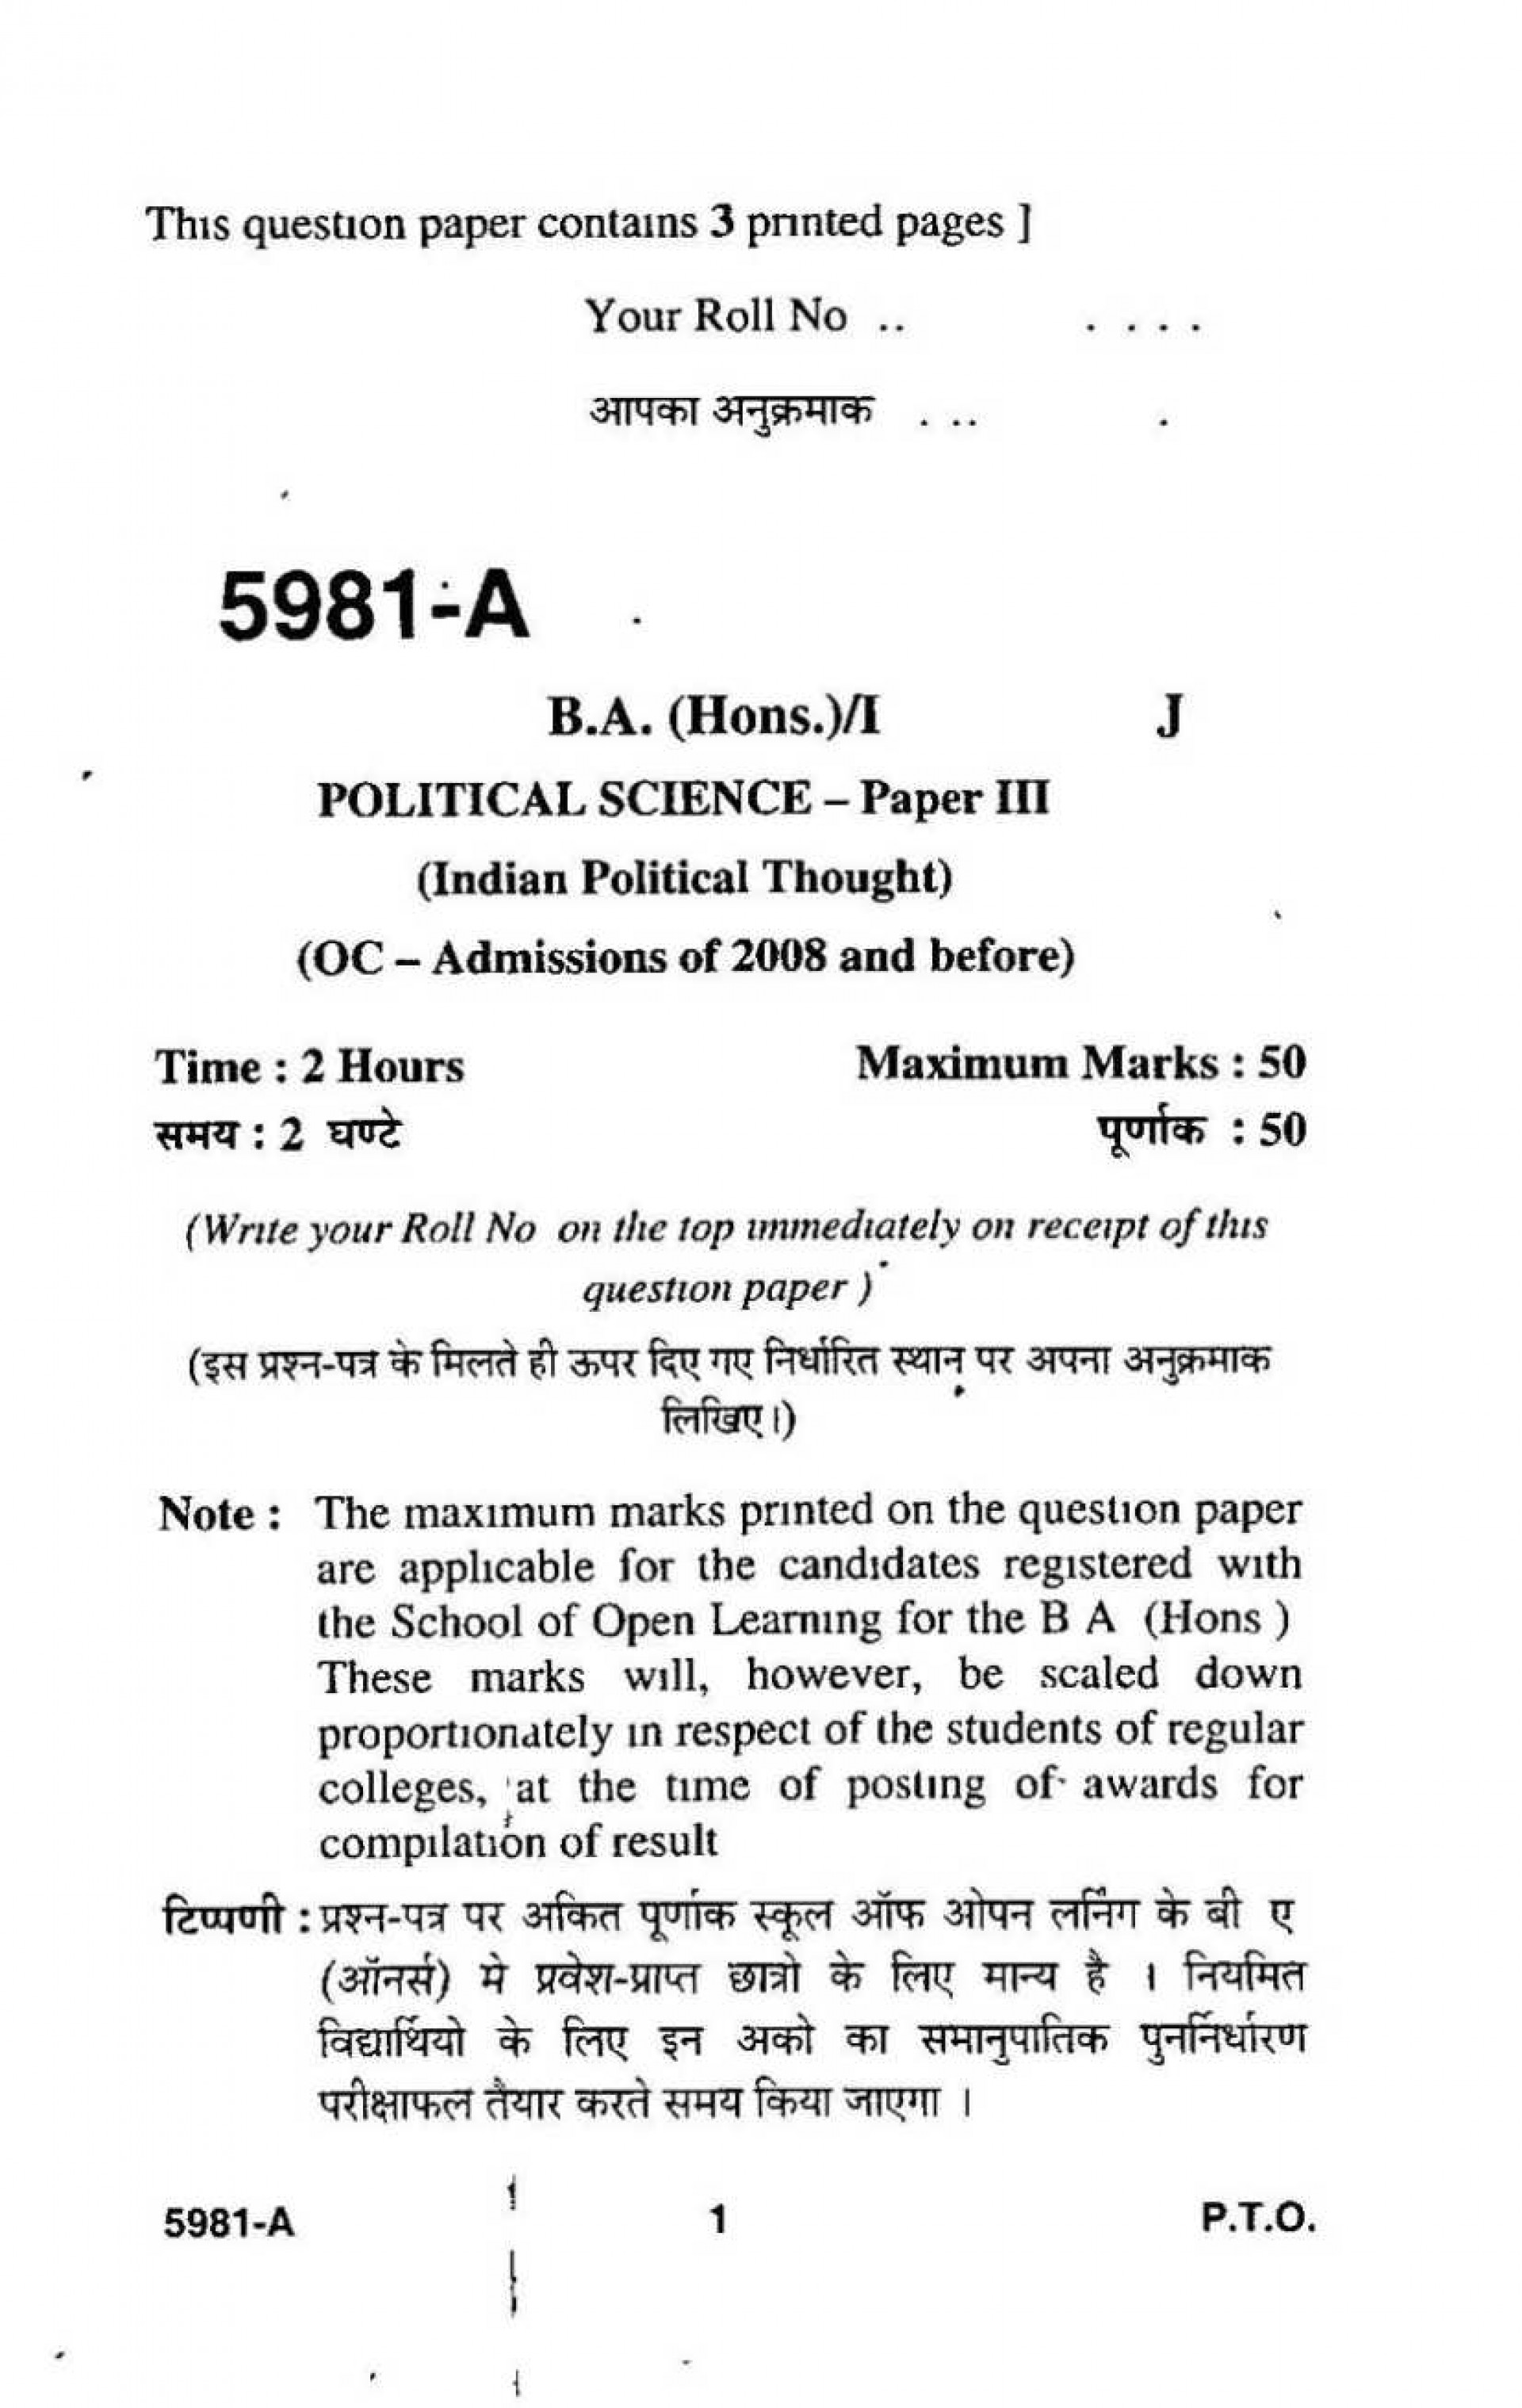 014 Political Science Research Essay Topics Paper Delhi University H First Year Previous Years Question Archaicawful 2014 101 1920